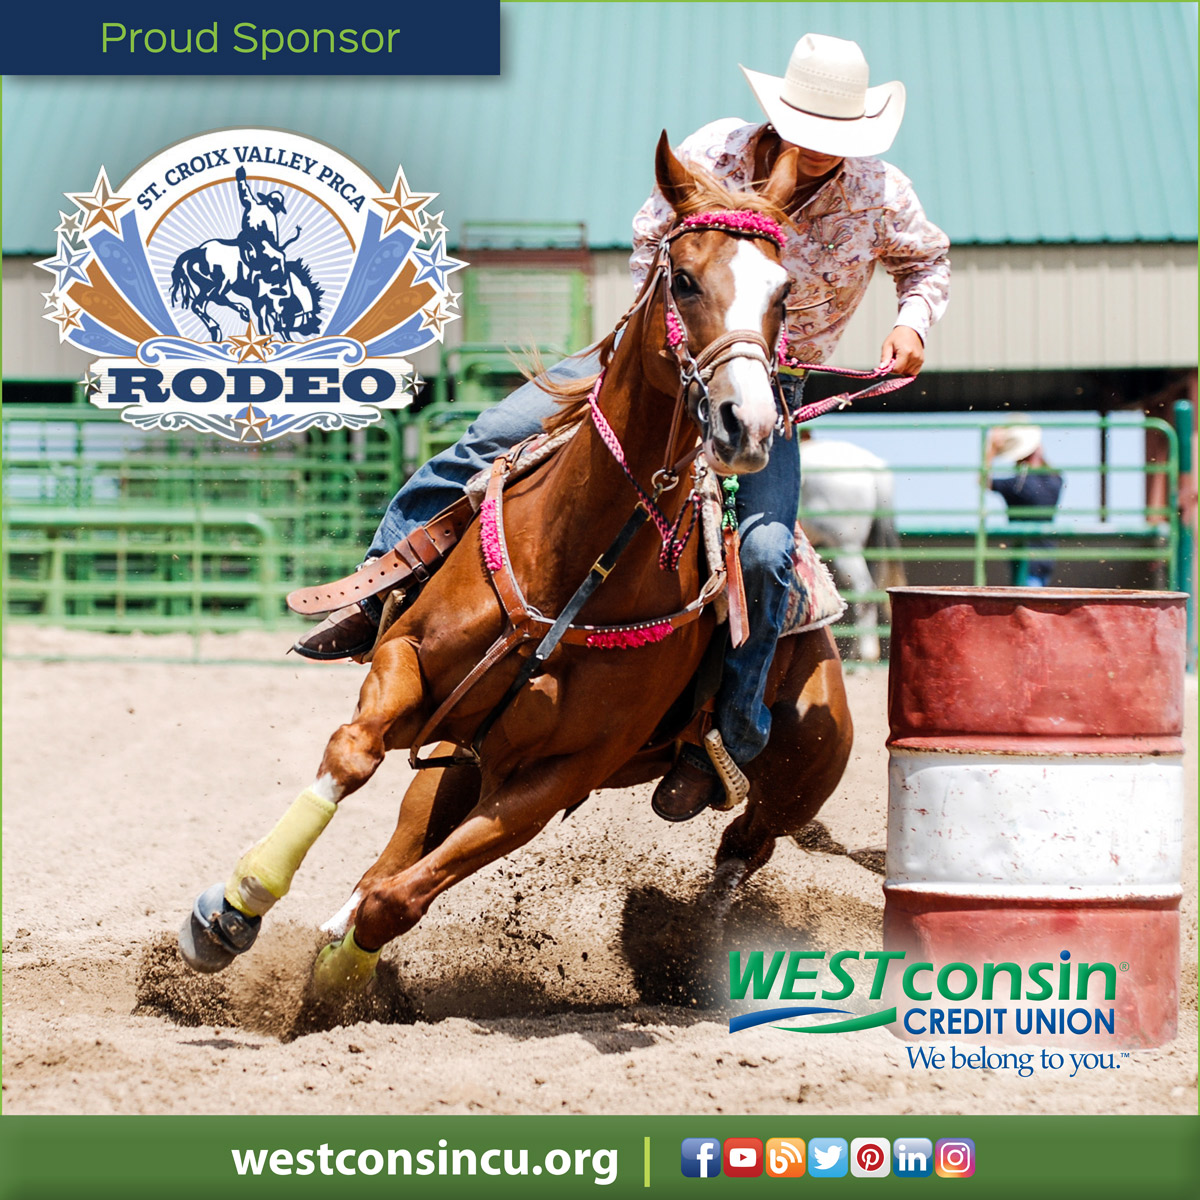 Westconsin Credit Union Blog Advance Tickets Available St Croix Valley Prca Rodeo